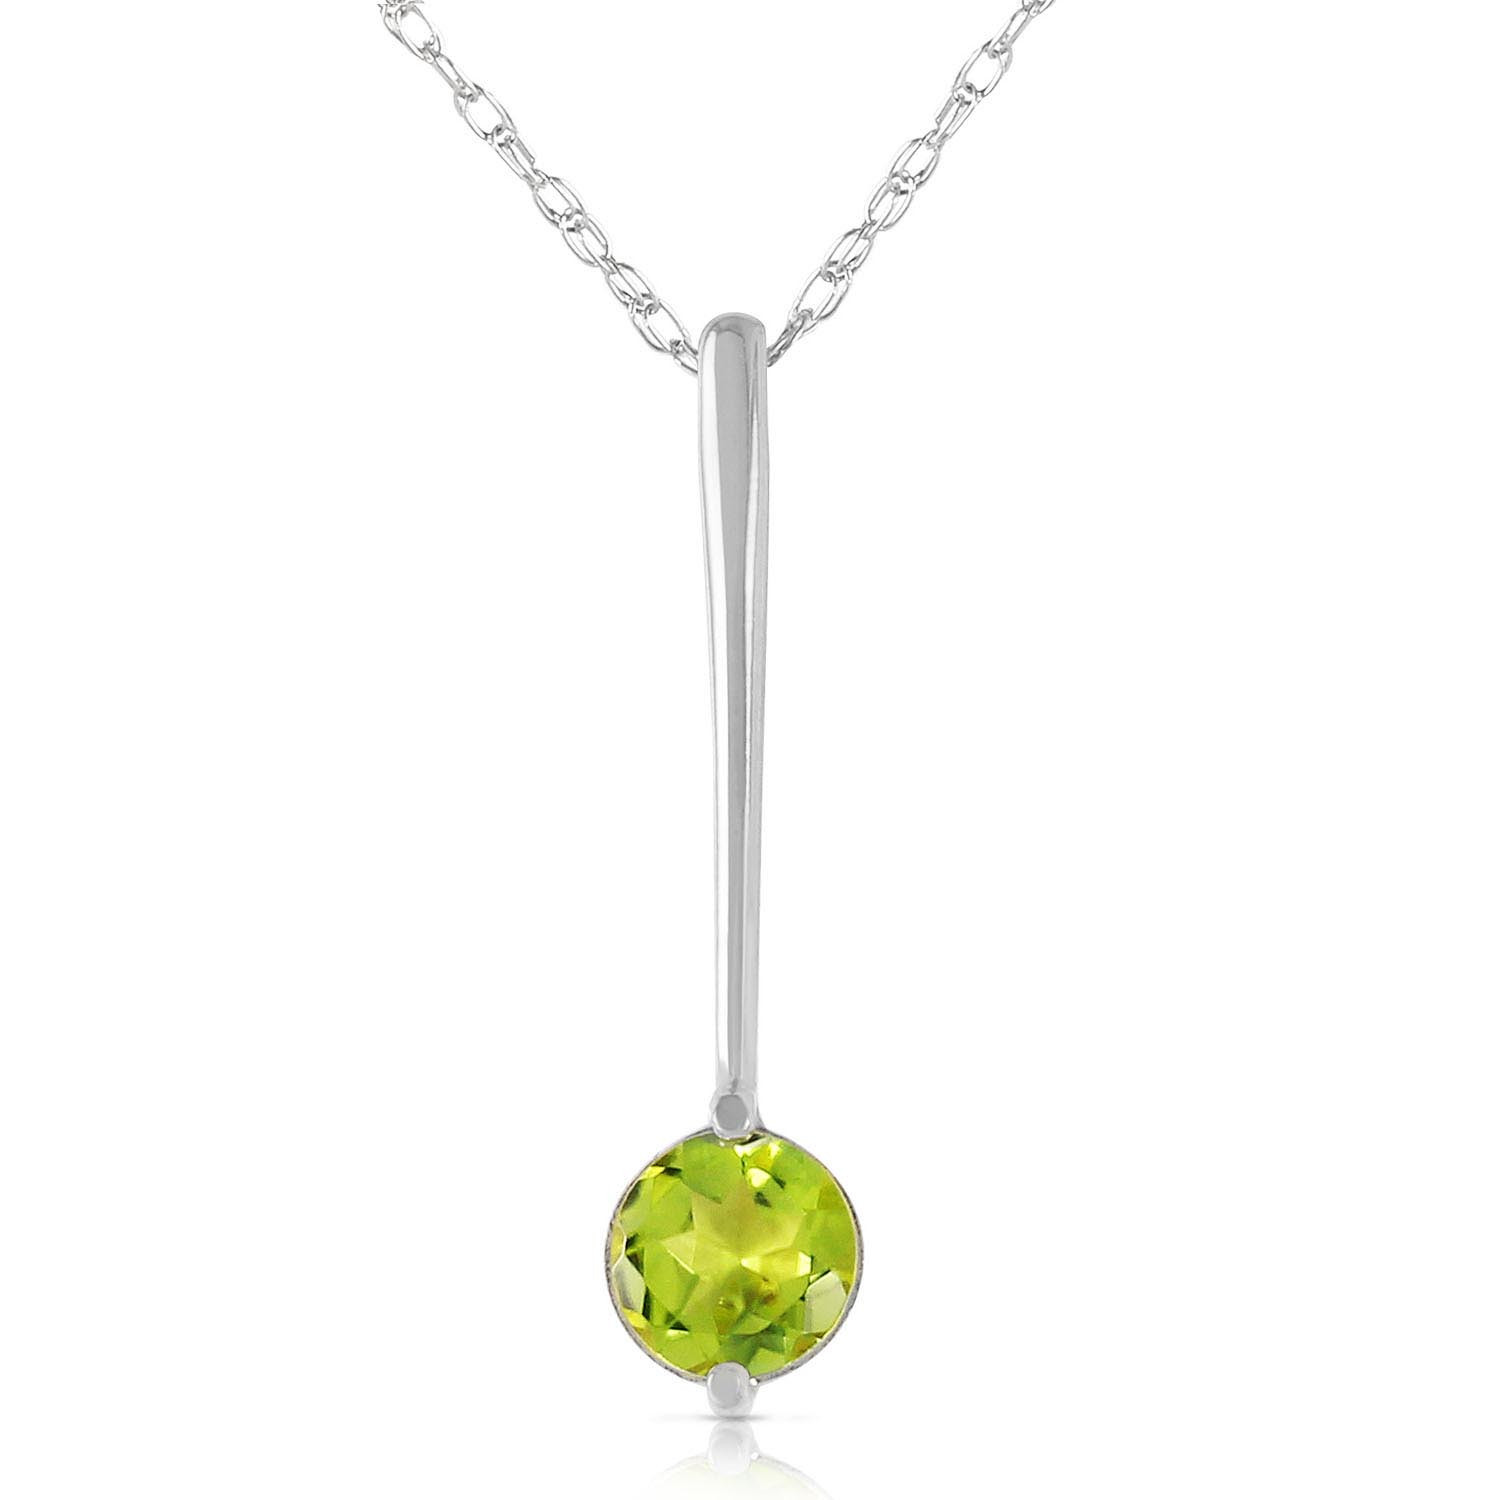 Round Cut Peridot Pendant Necklace 0.65 ct in 9ct White Gold